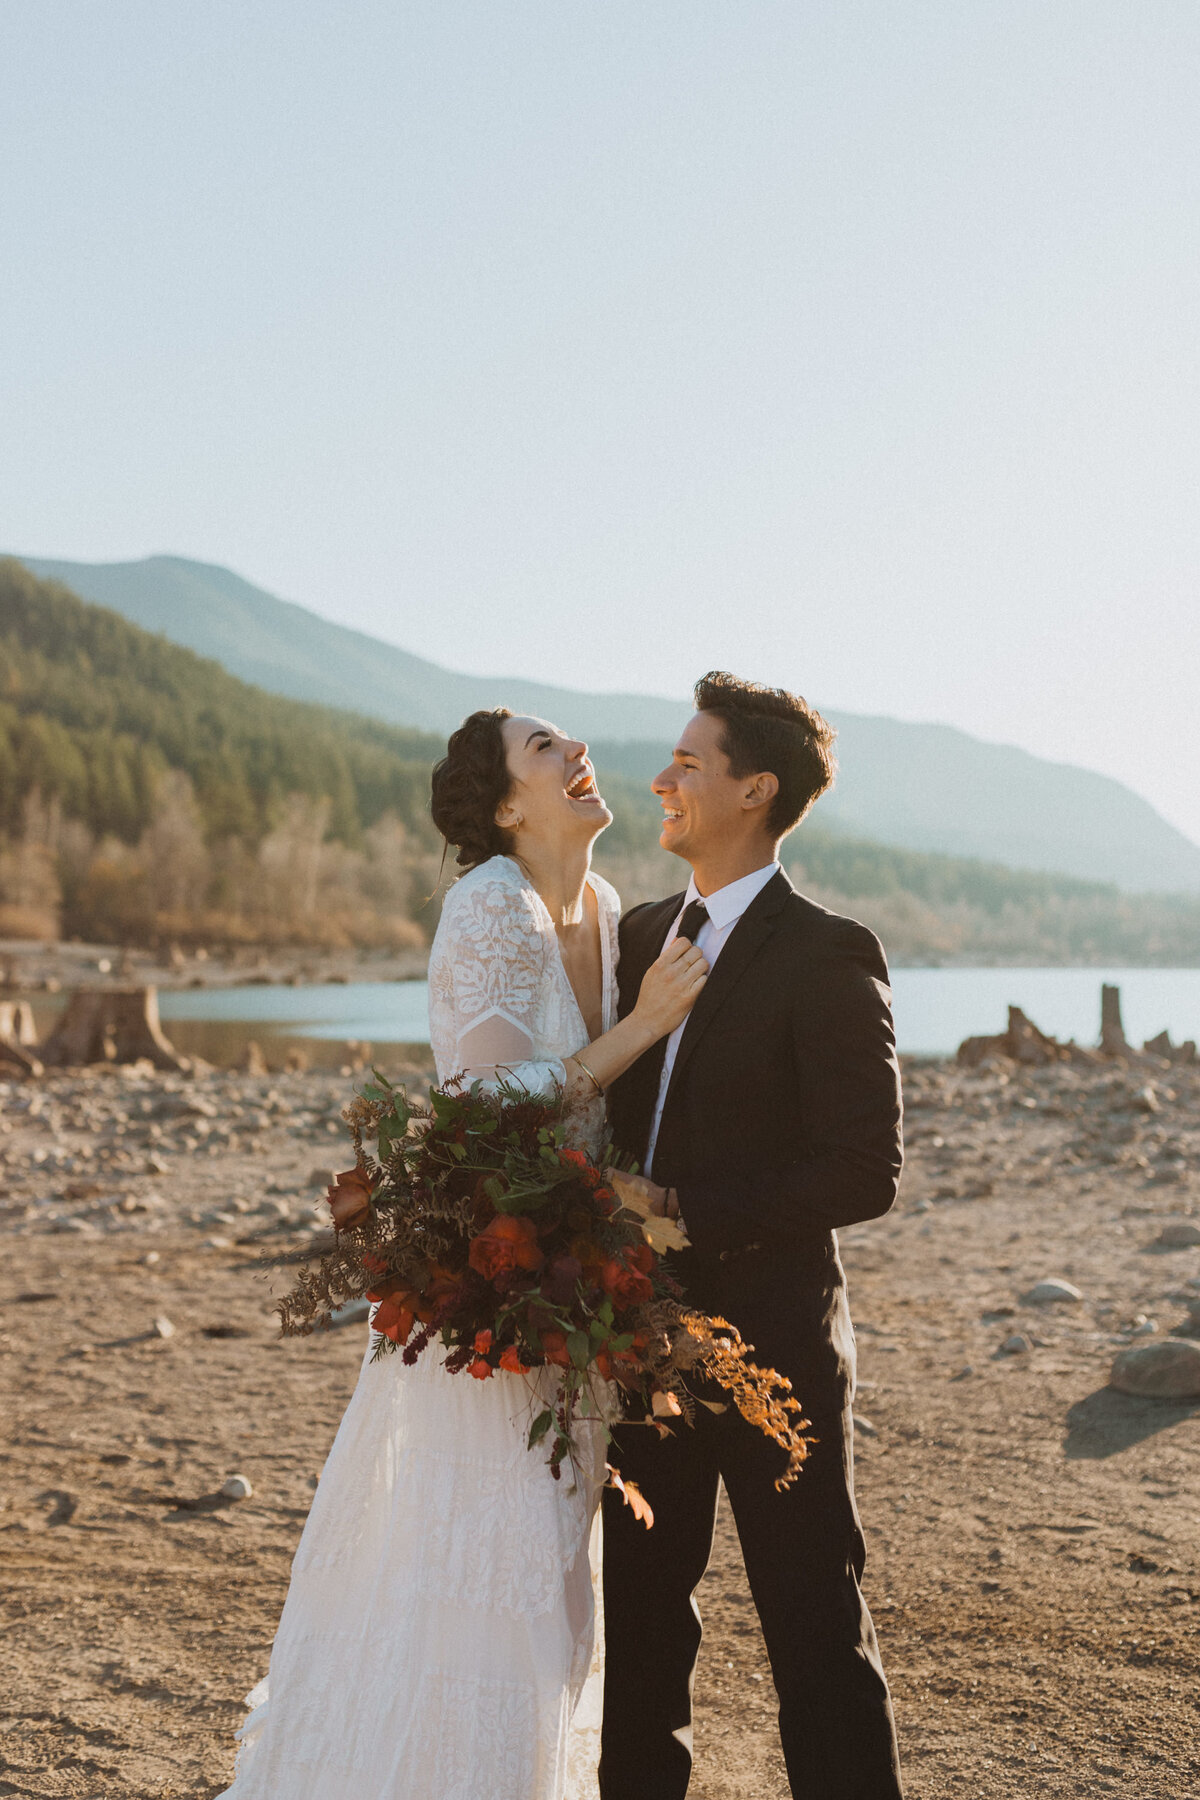 liv_hettinga_photography_seattle_lake_adventure_elopement-24